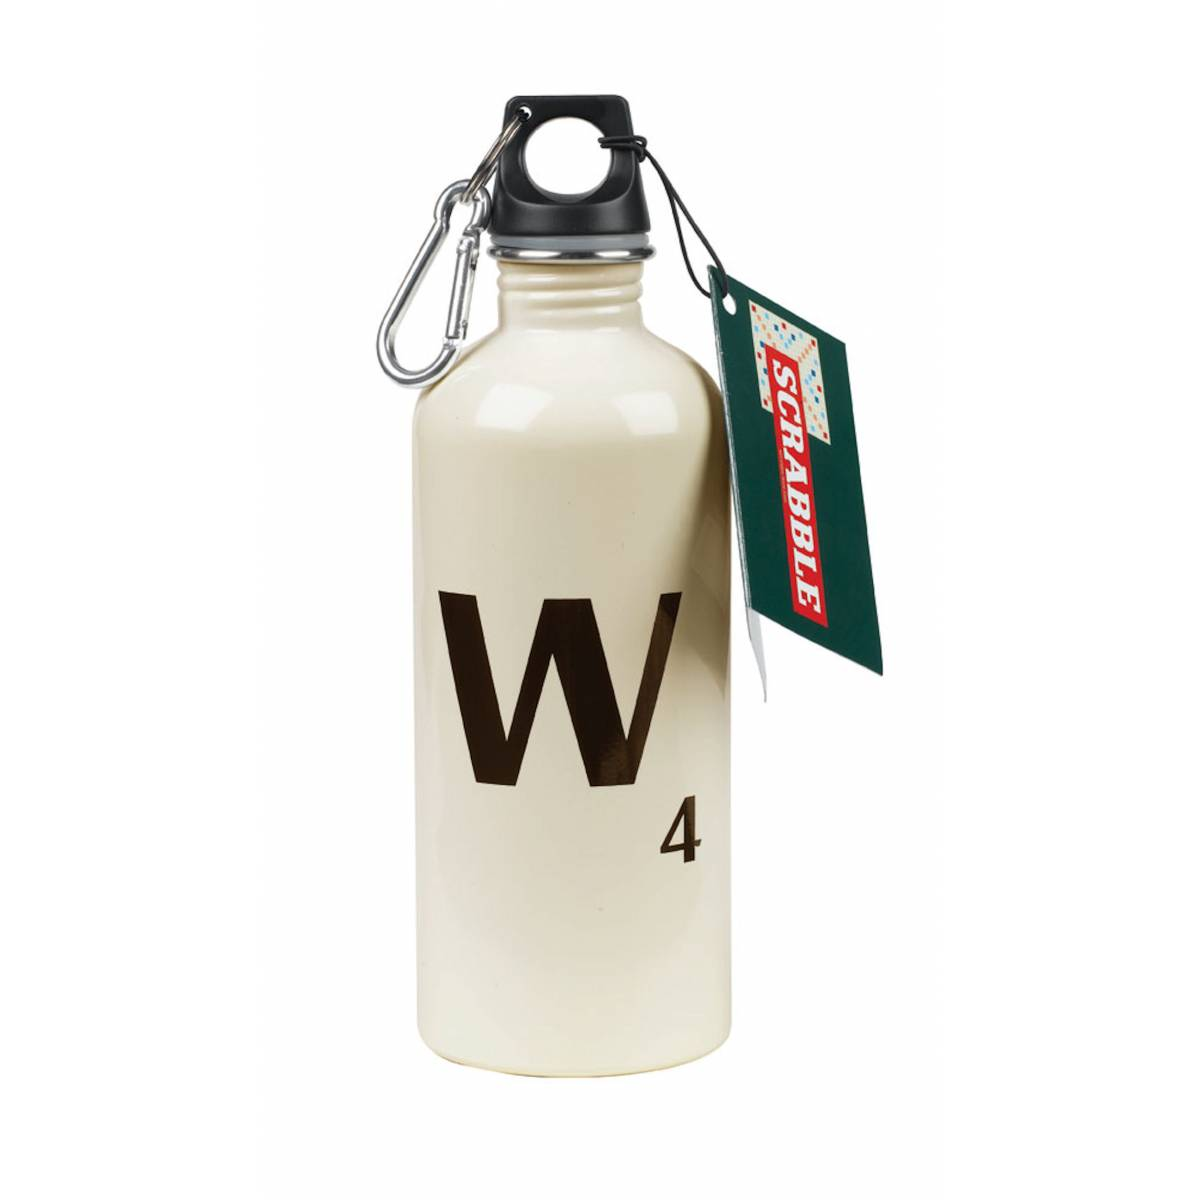 Scrabble Water Bottle